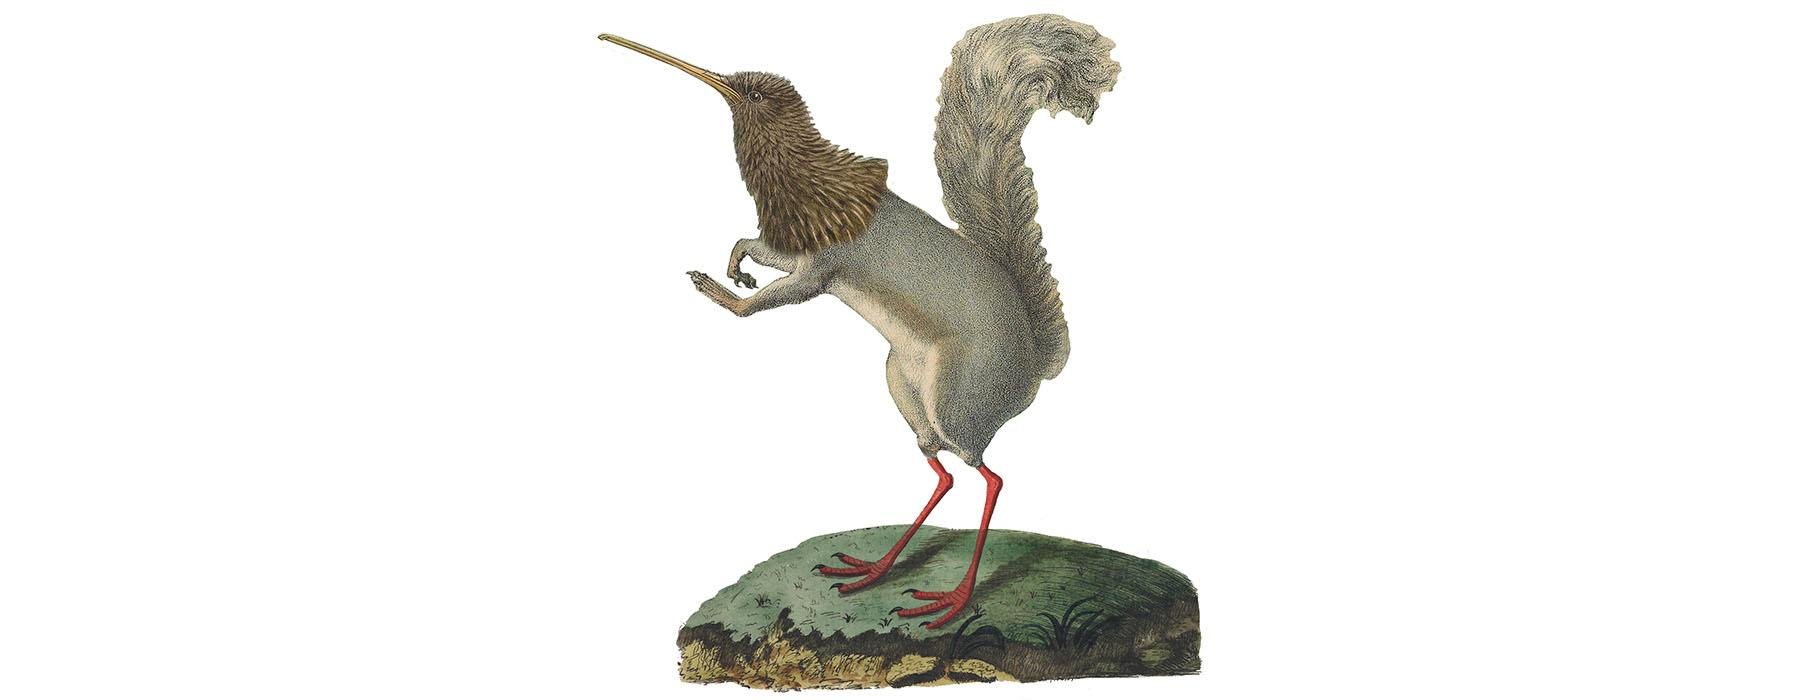 Image of an animal made up of three separate pictures: the head of a kiwi, the body of a squirrel, and the legs of a bird